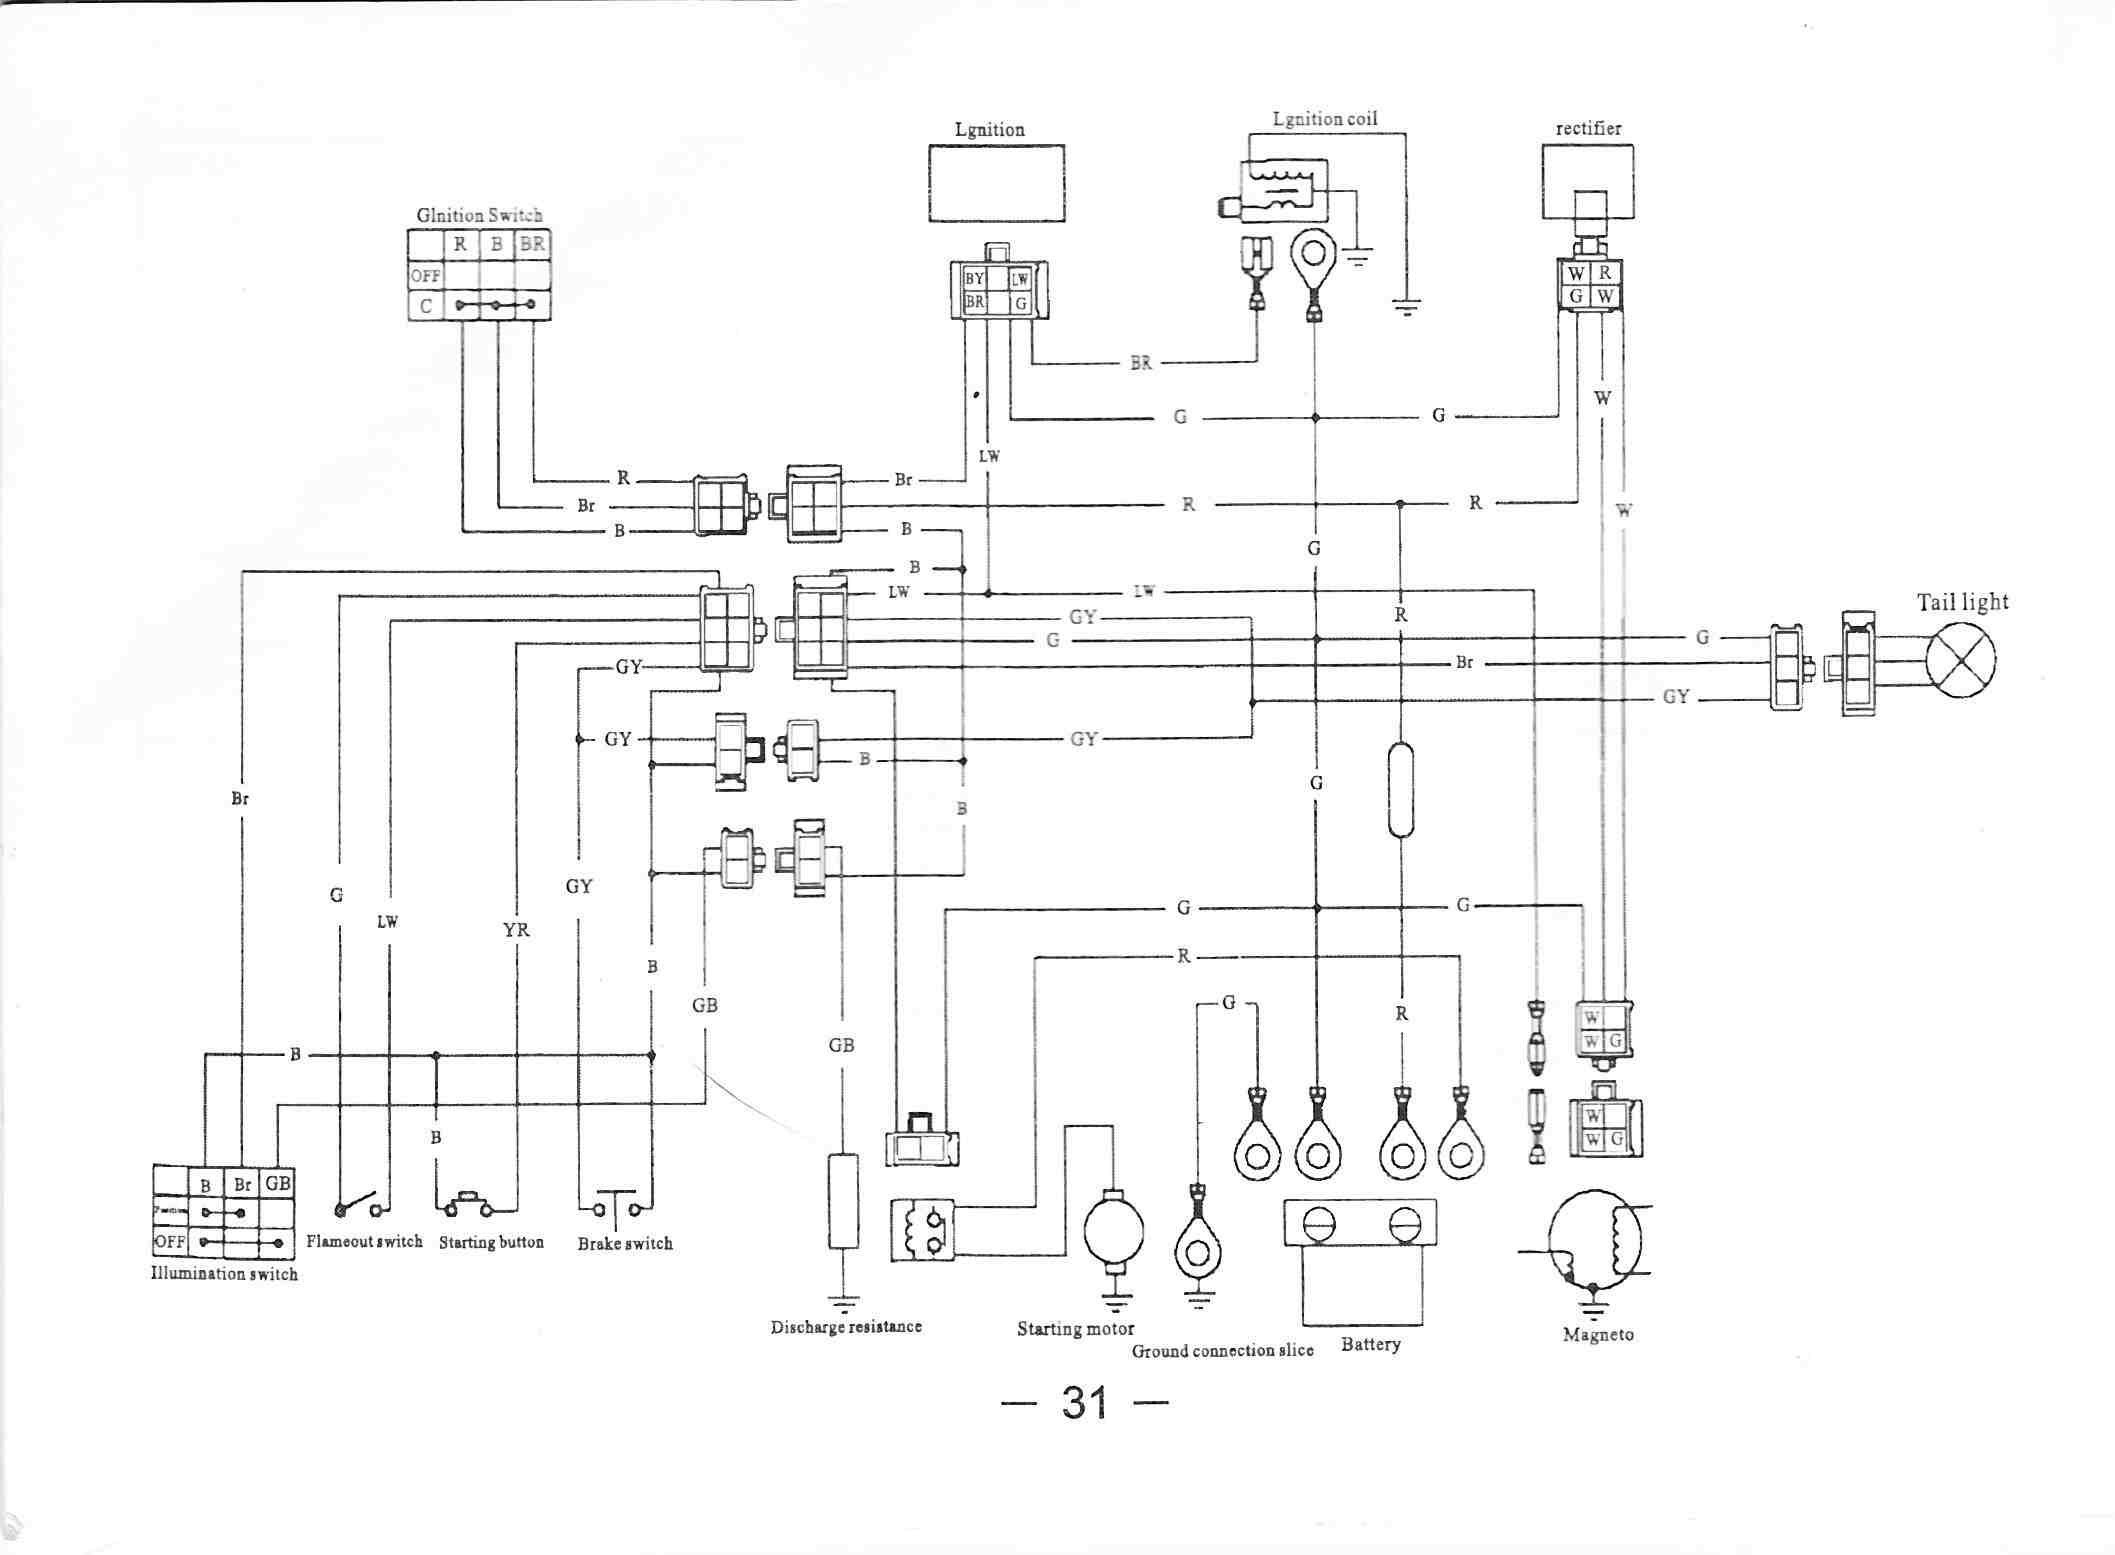 Atv Wiring Diagram In Addition Chinese Harness As 2005 F150 Ford Truck Power Window Binatanicom 250 250cc Rh 207 148 1 129